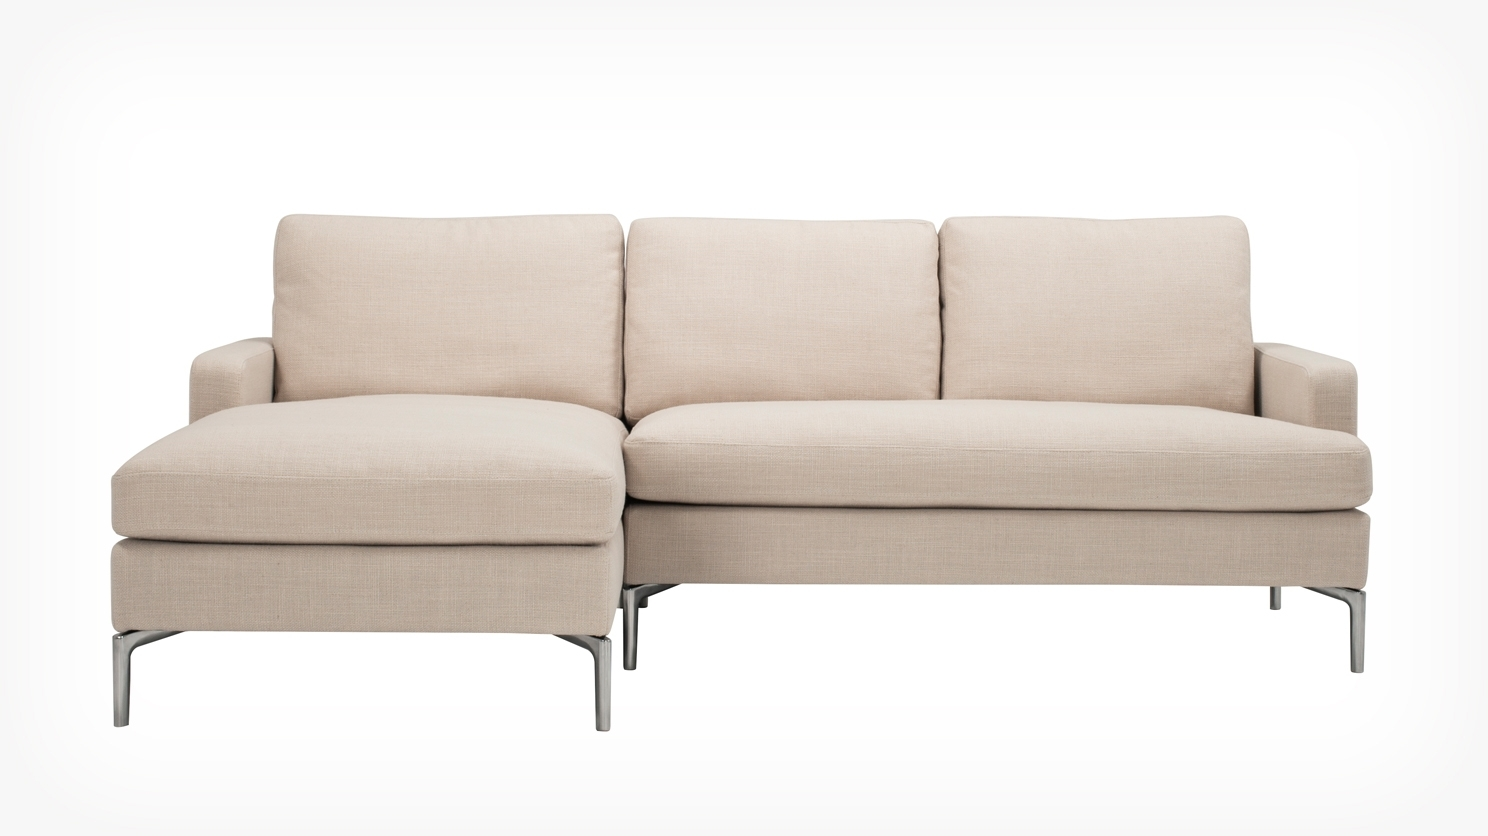 Eq3 | Eve Classic 2 Piece Sectional Sofa With Chaise – Fabric With Regard To Eq3 Sectional Sofas (View 6 of 10)